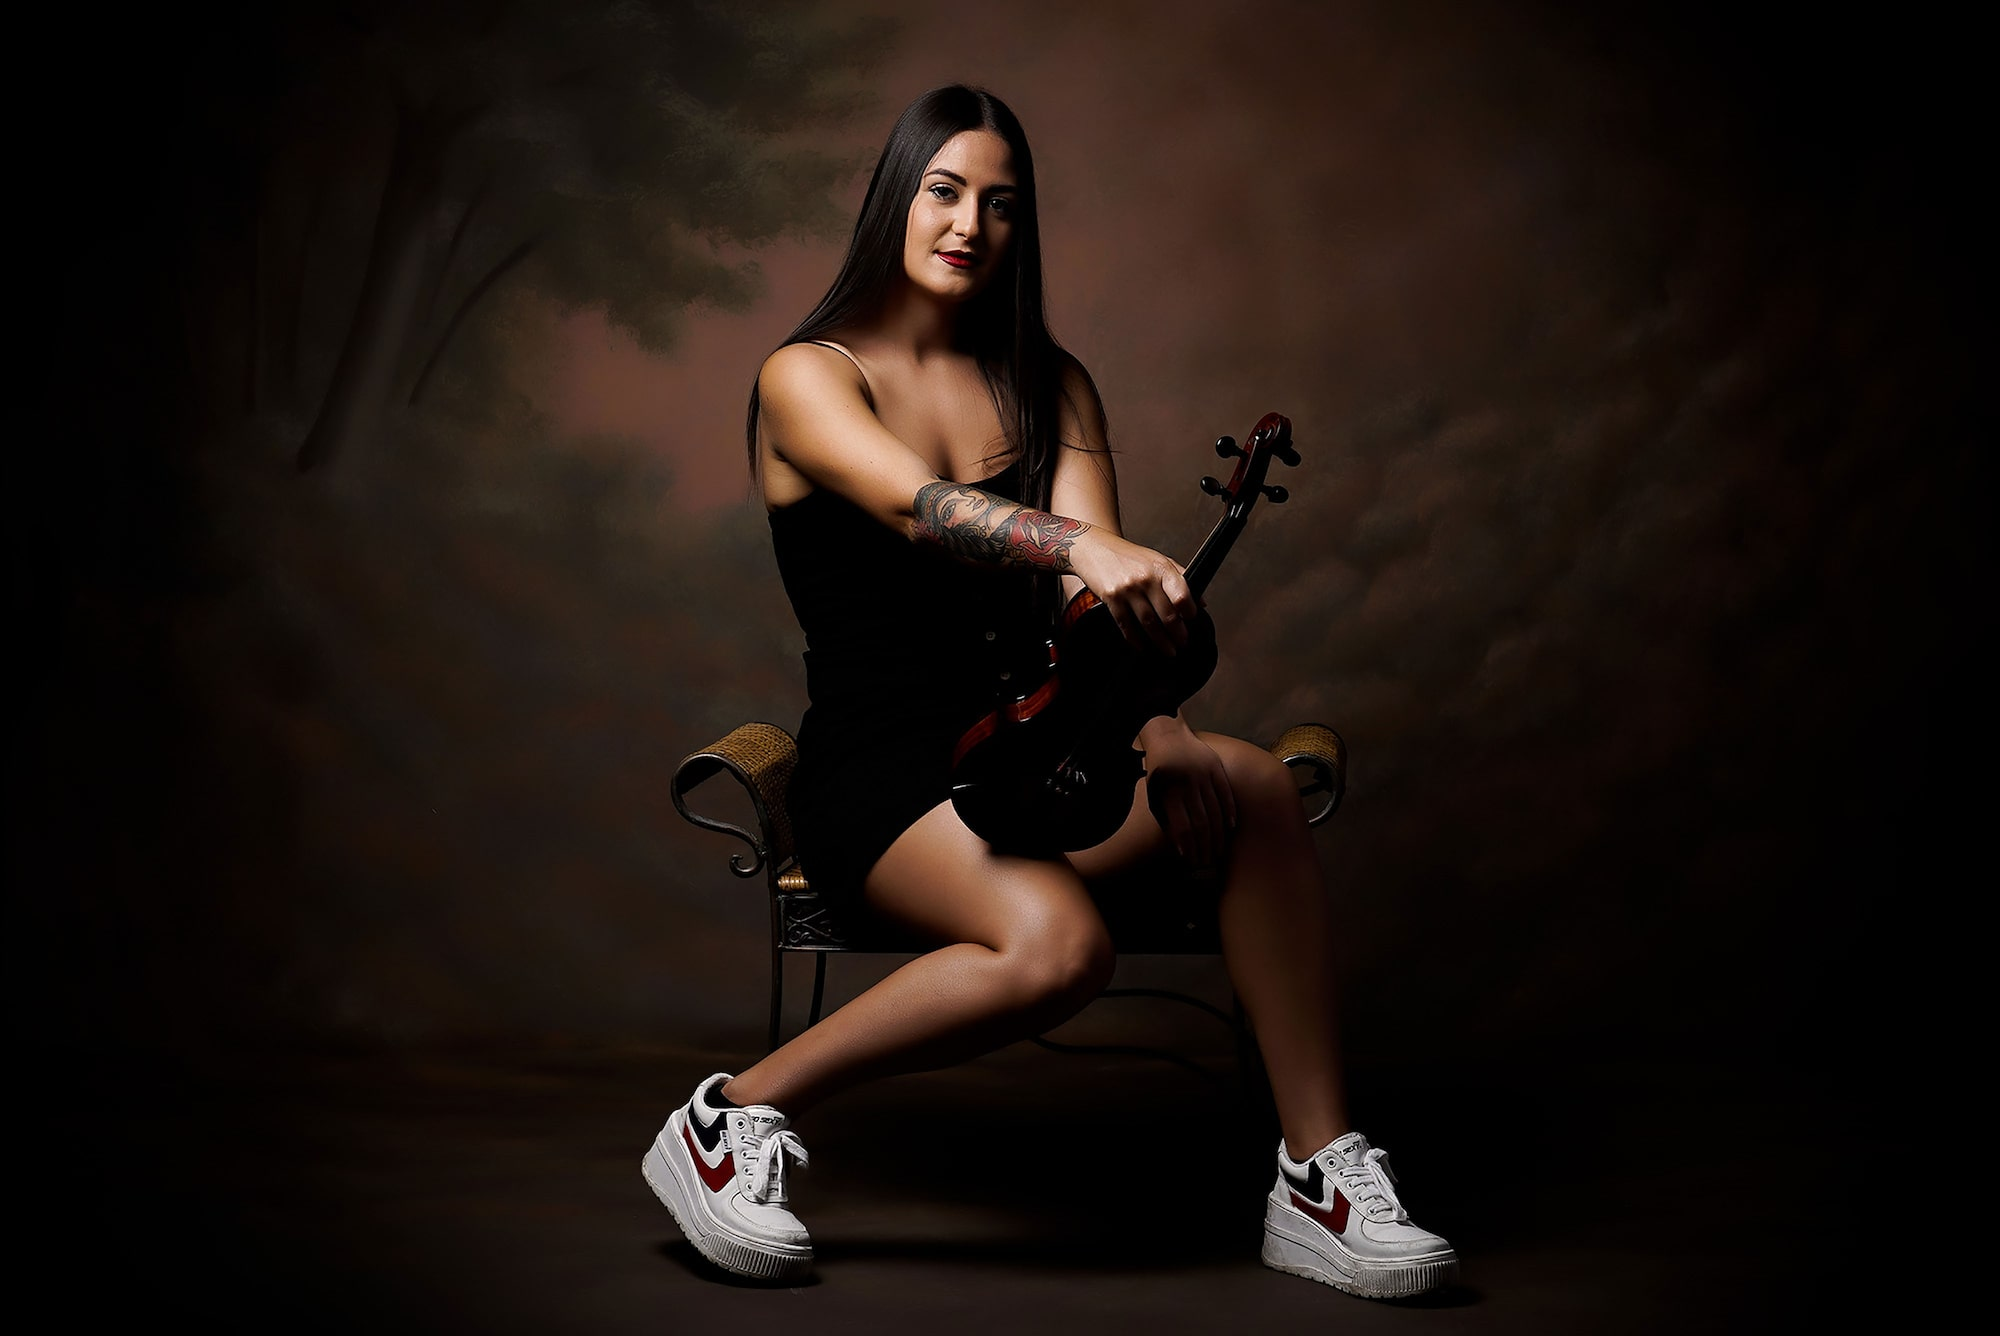 jose m mercado sony alpha 7S female violinist posest formall against a dark background